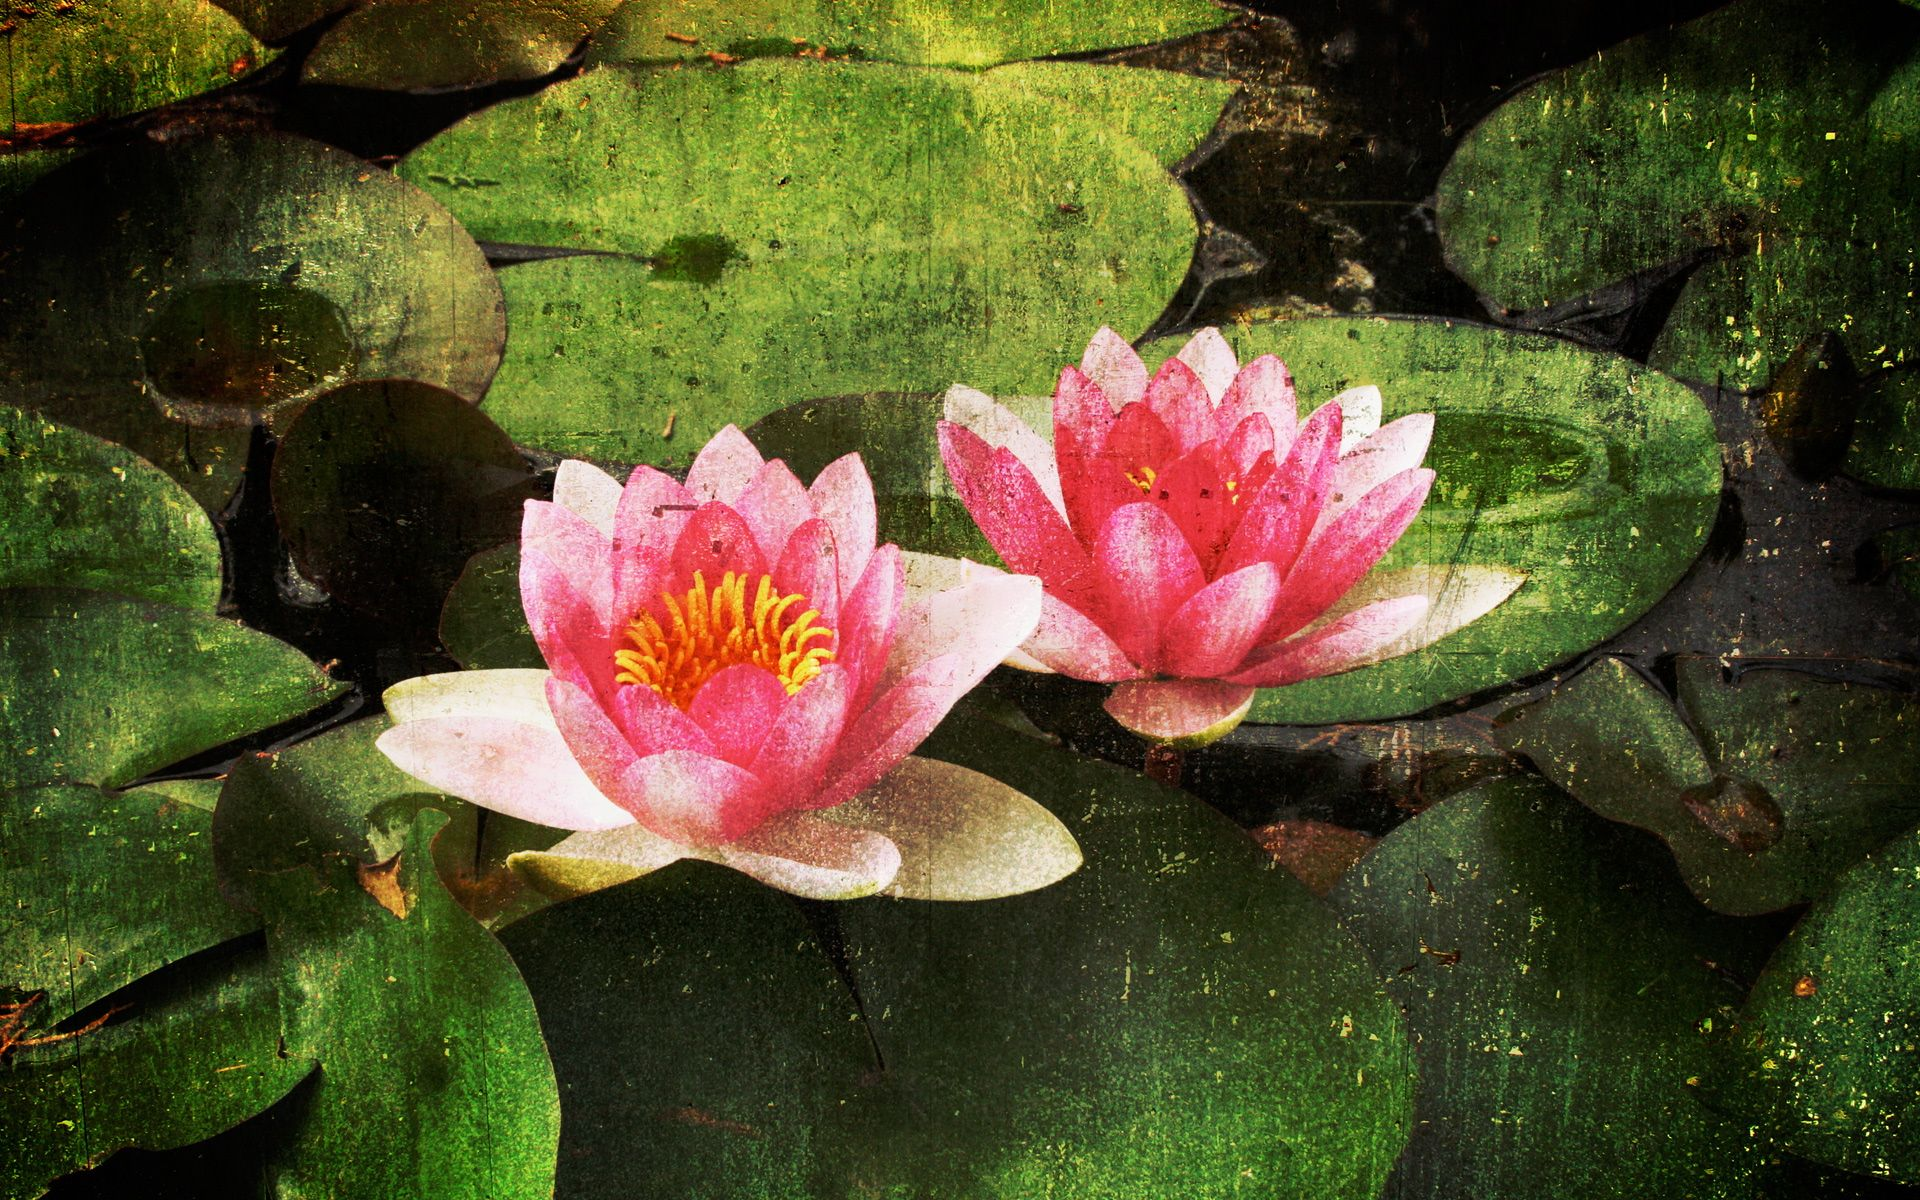 paintings of flowers - water lilies